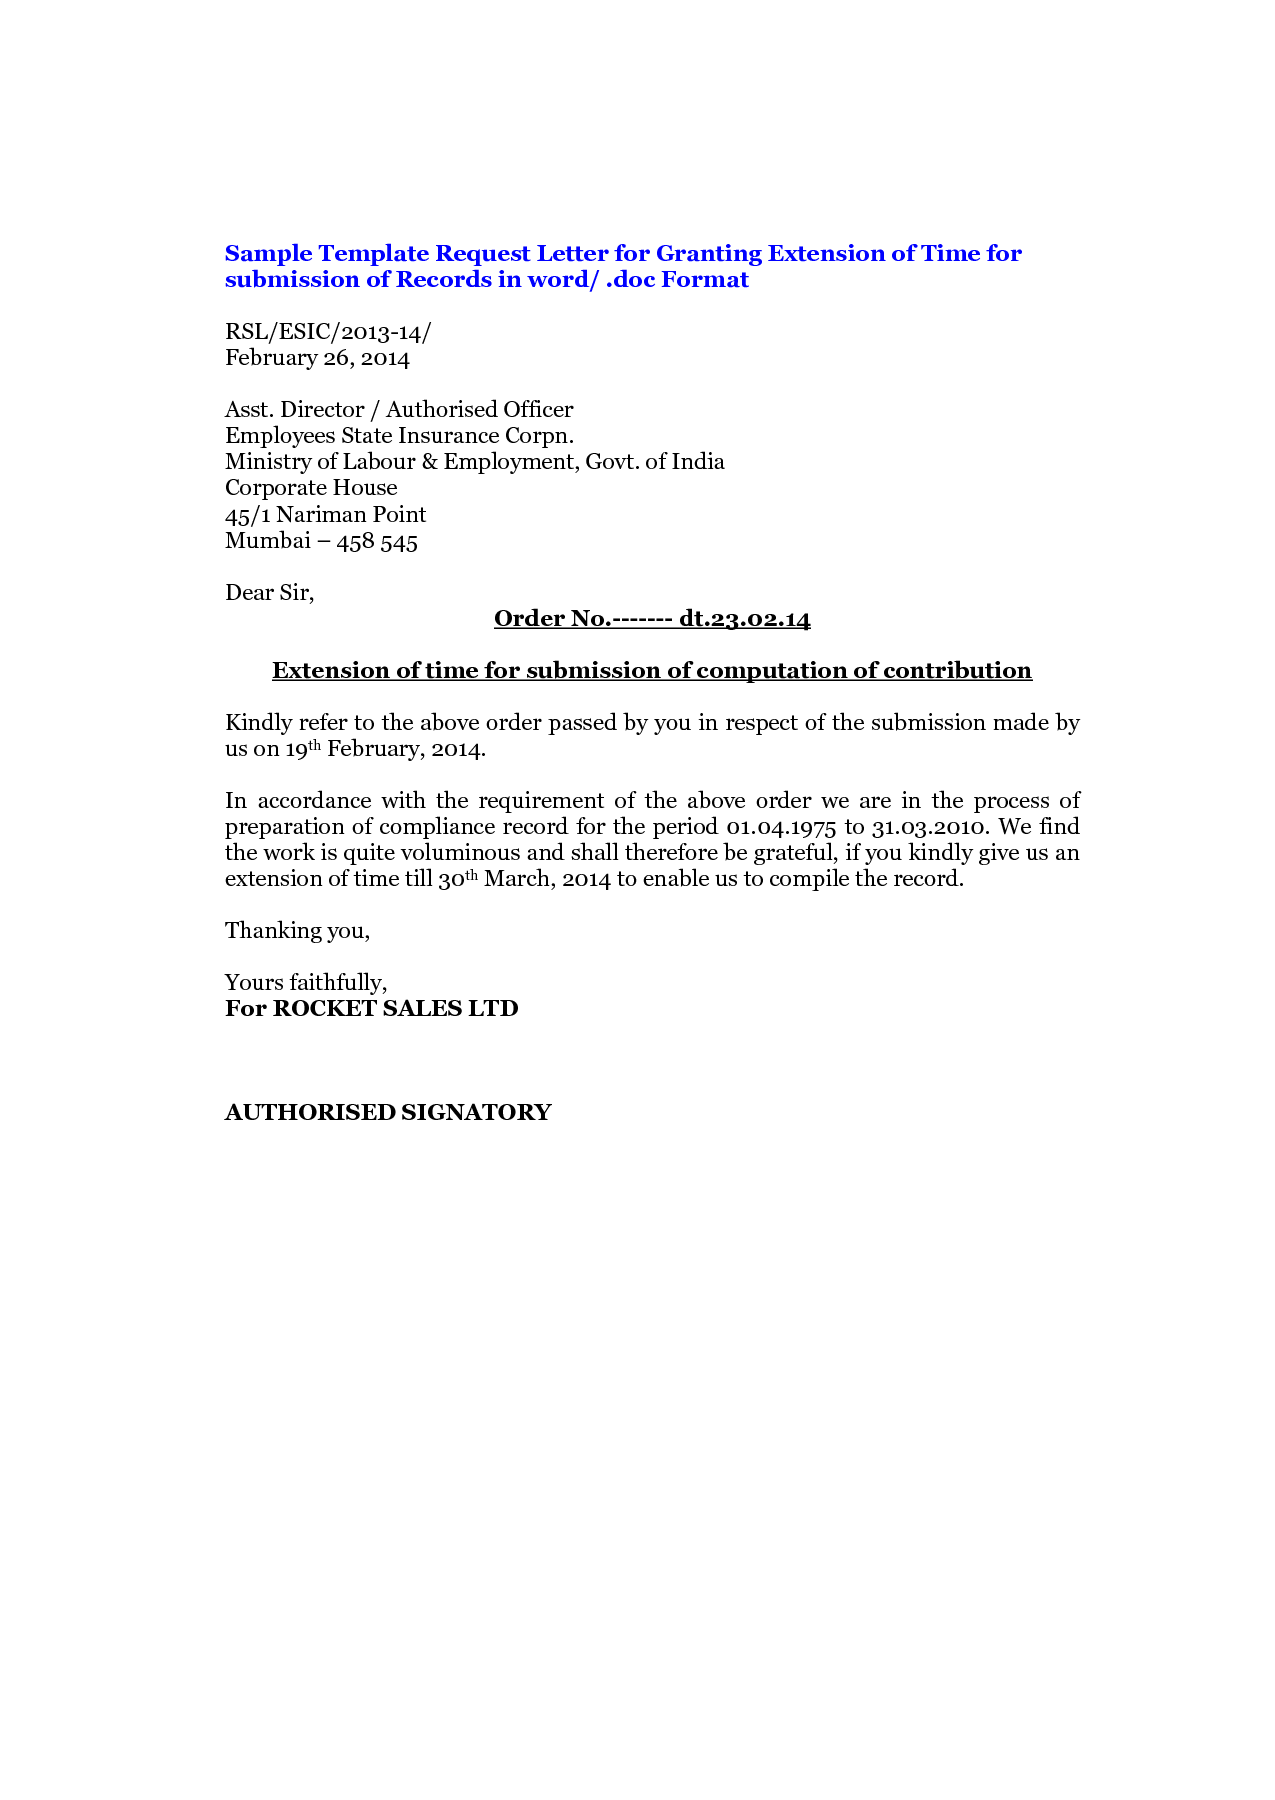 Dissertation extension request letter